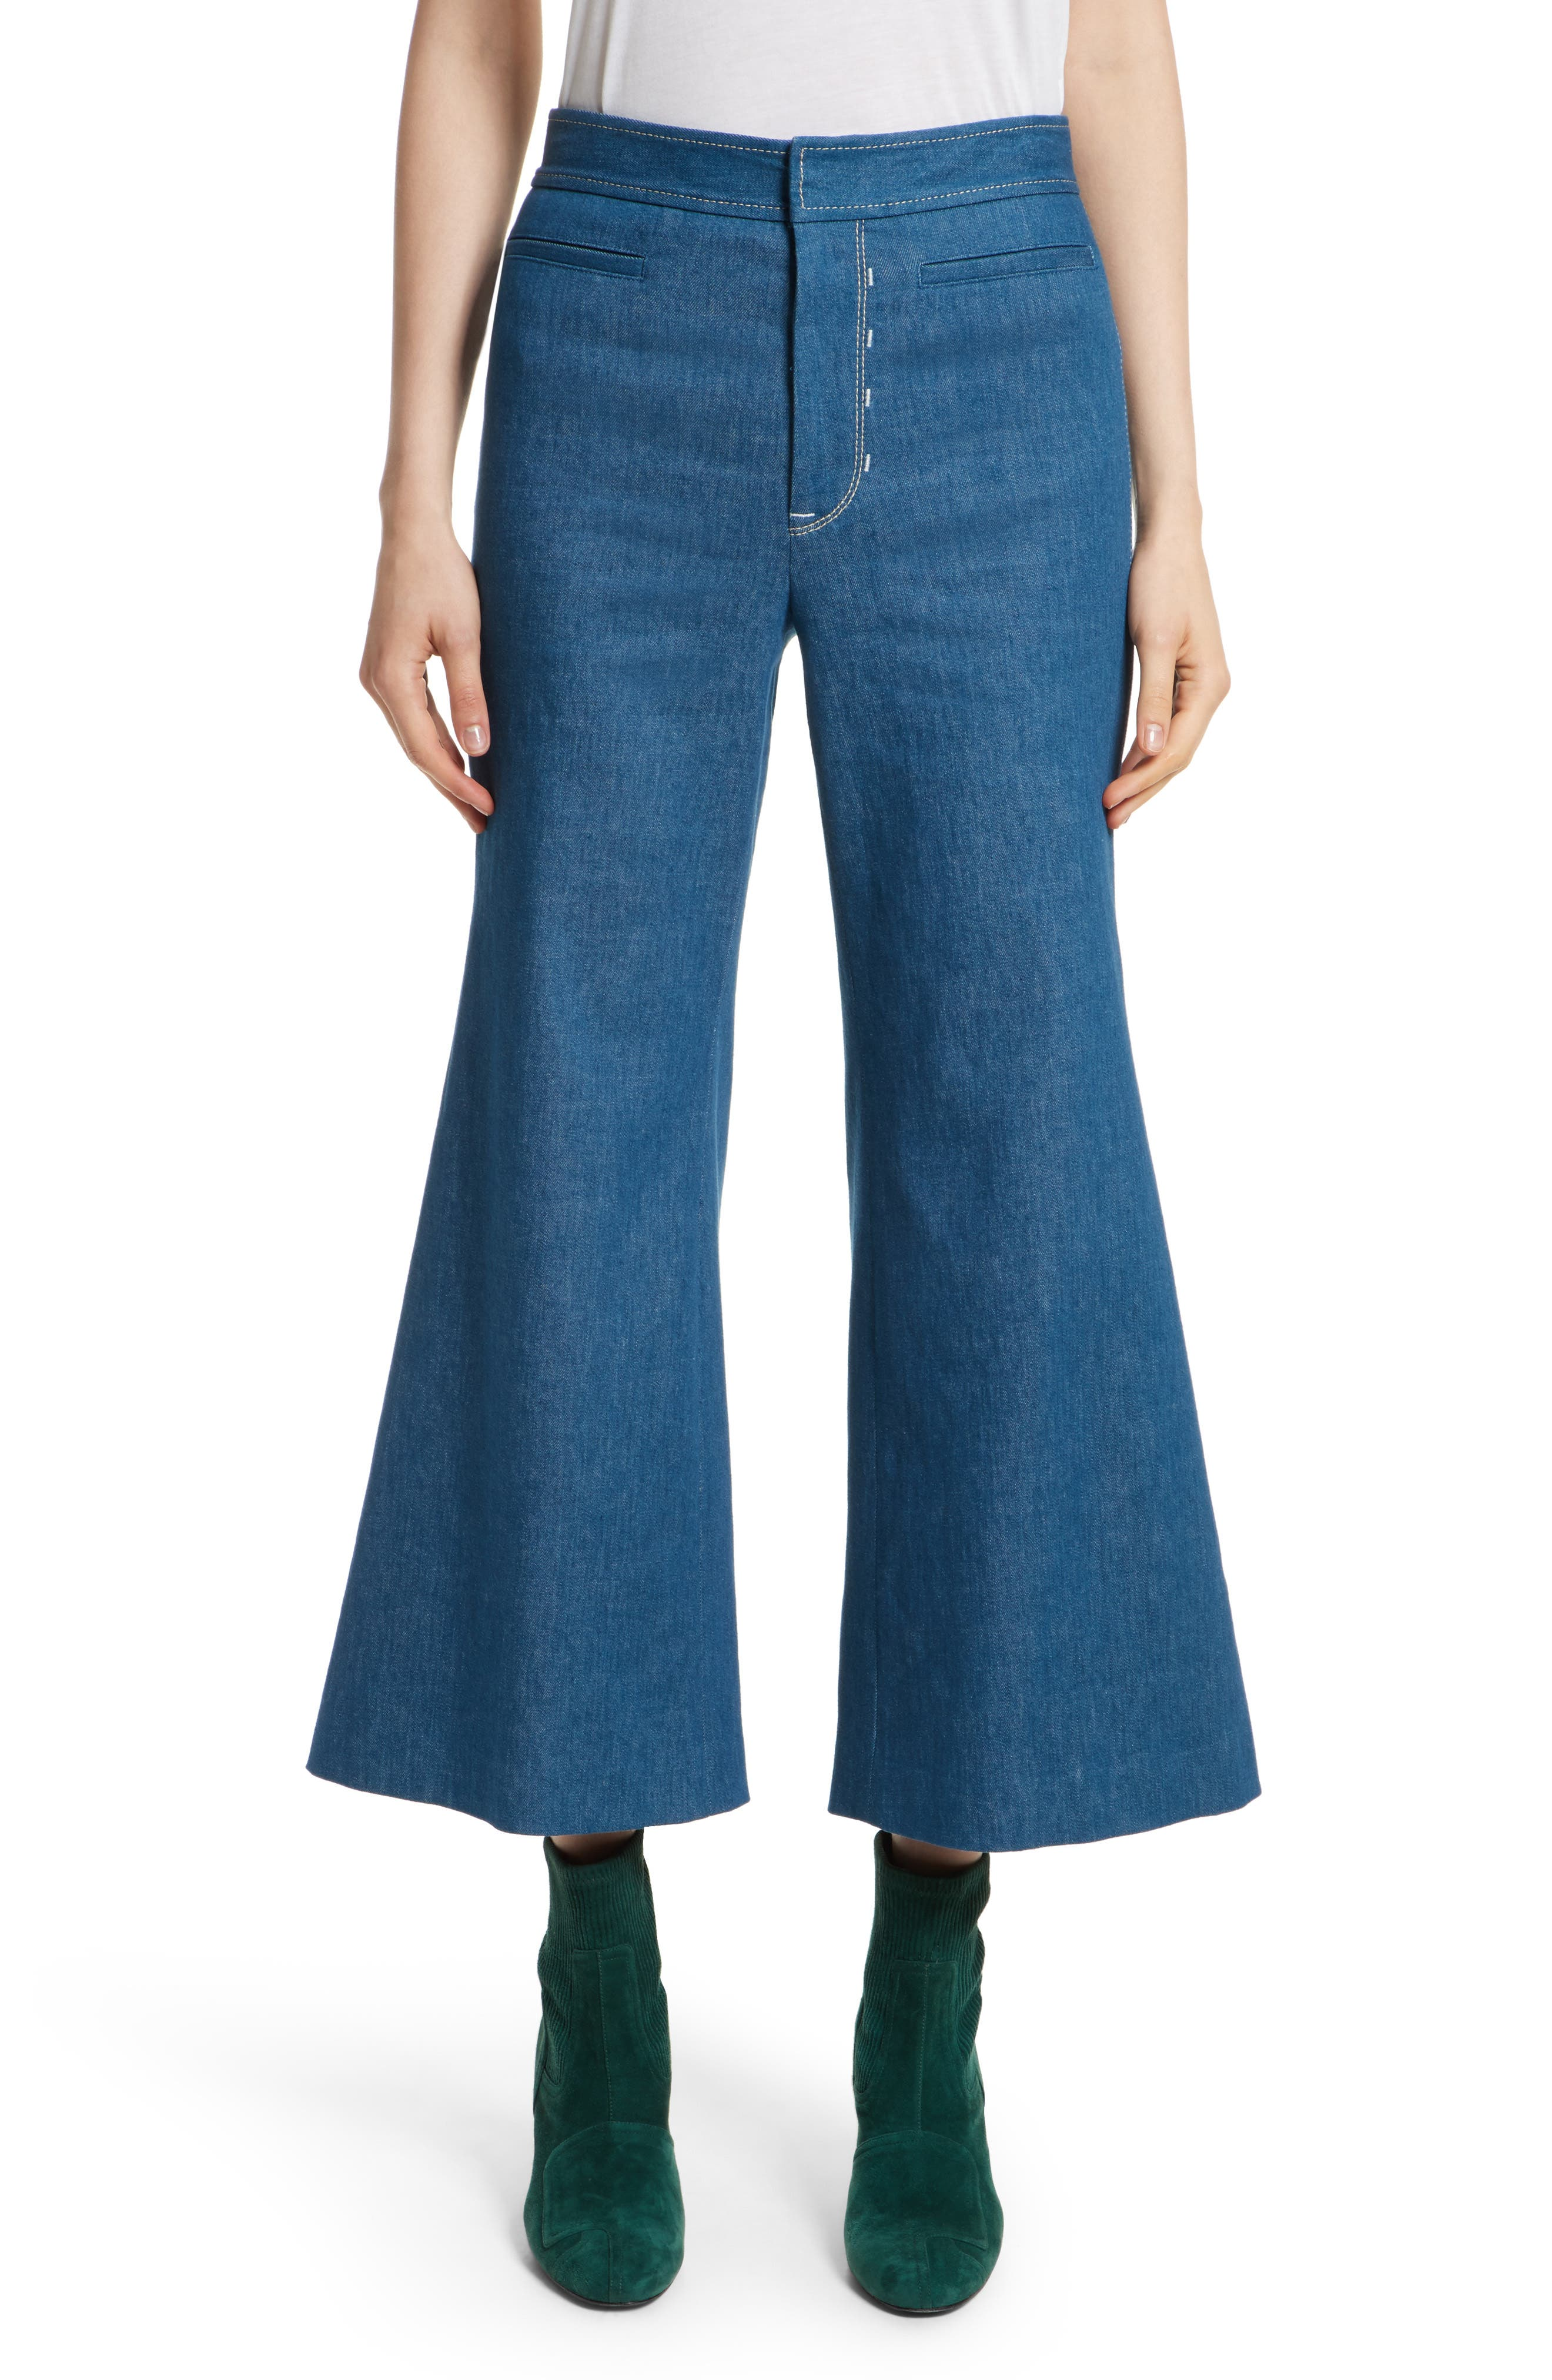 Alternate Image 1 Selected - Colovos Crop Flare Jeans (Sea Green)